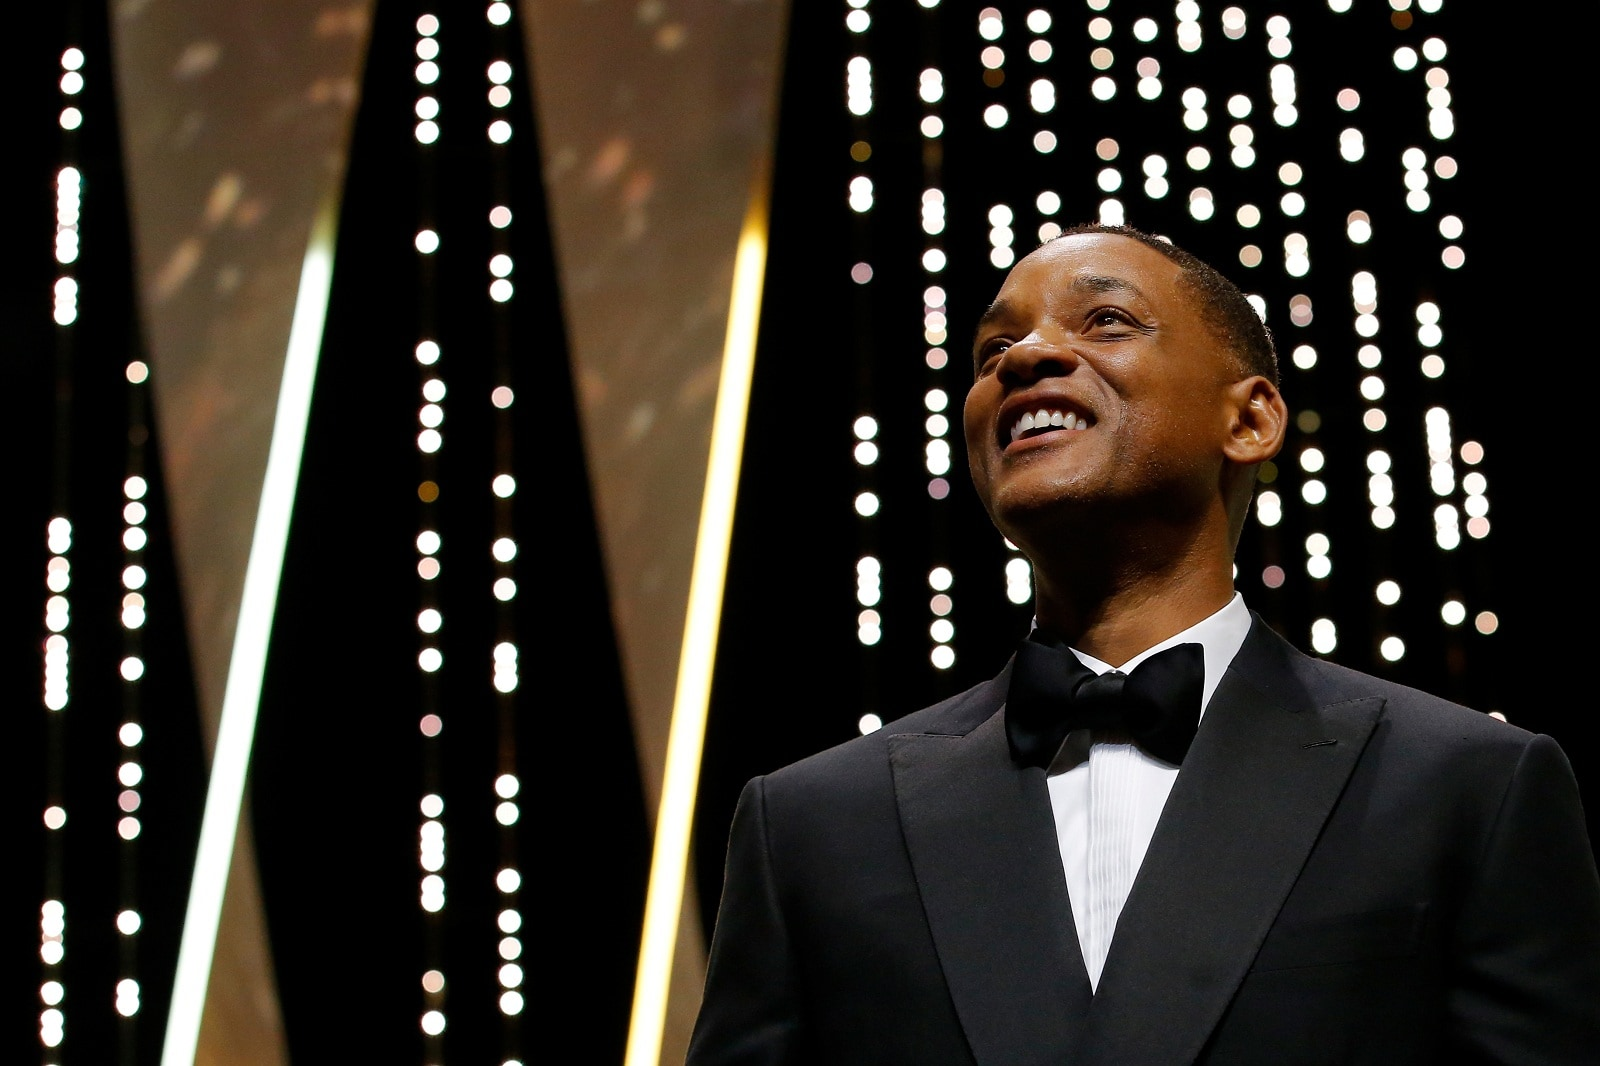 #10. Will Smith: Net Earnings: $42 million. At 49, Bel Air's prince may no longer be fresh, but he's still banking big bucks. His turn in Netflix's panned 'Bright' earned him an estimated $20 million, while a forthcoming role as Genie in Disney's live-action 'Aladdin' adds to his bottom line. In a rare return to music, he also appeared on Nicky Jam's World Cup Anthem